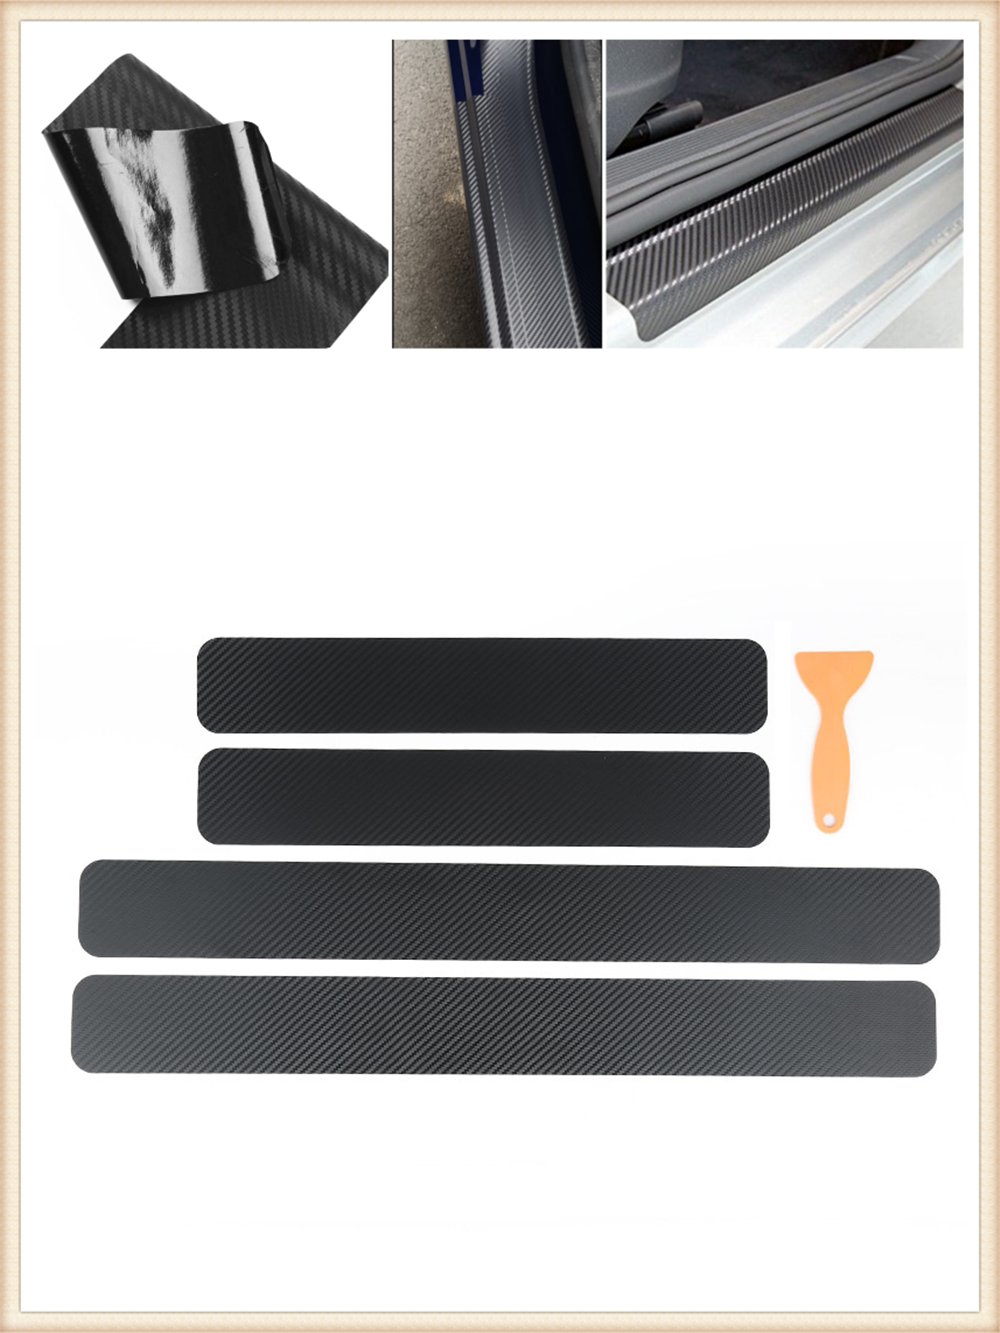 4 pieces of car shape carbon fiber door edge scratch protection film for Mercedes Benz ML500 ML350 GL450 B200 B150 CLK63 R F700